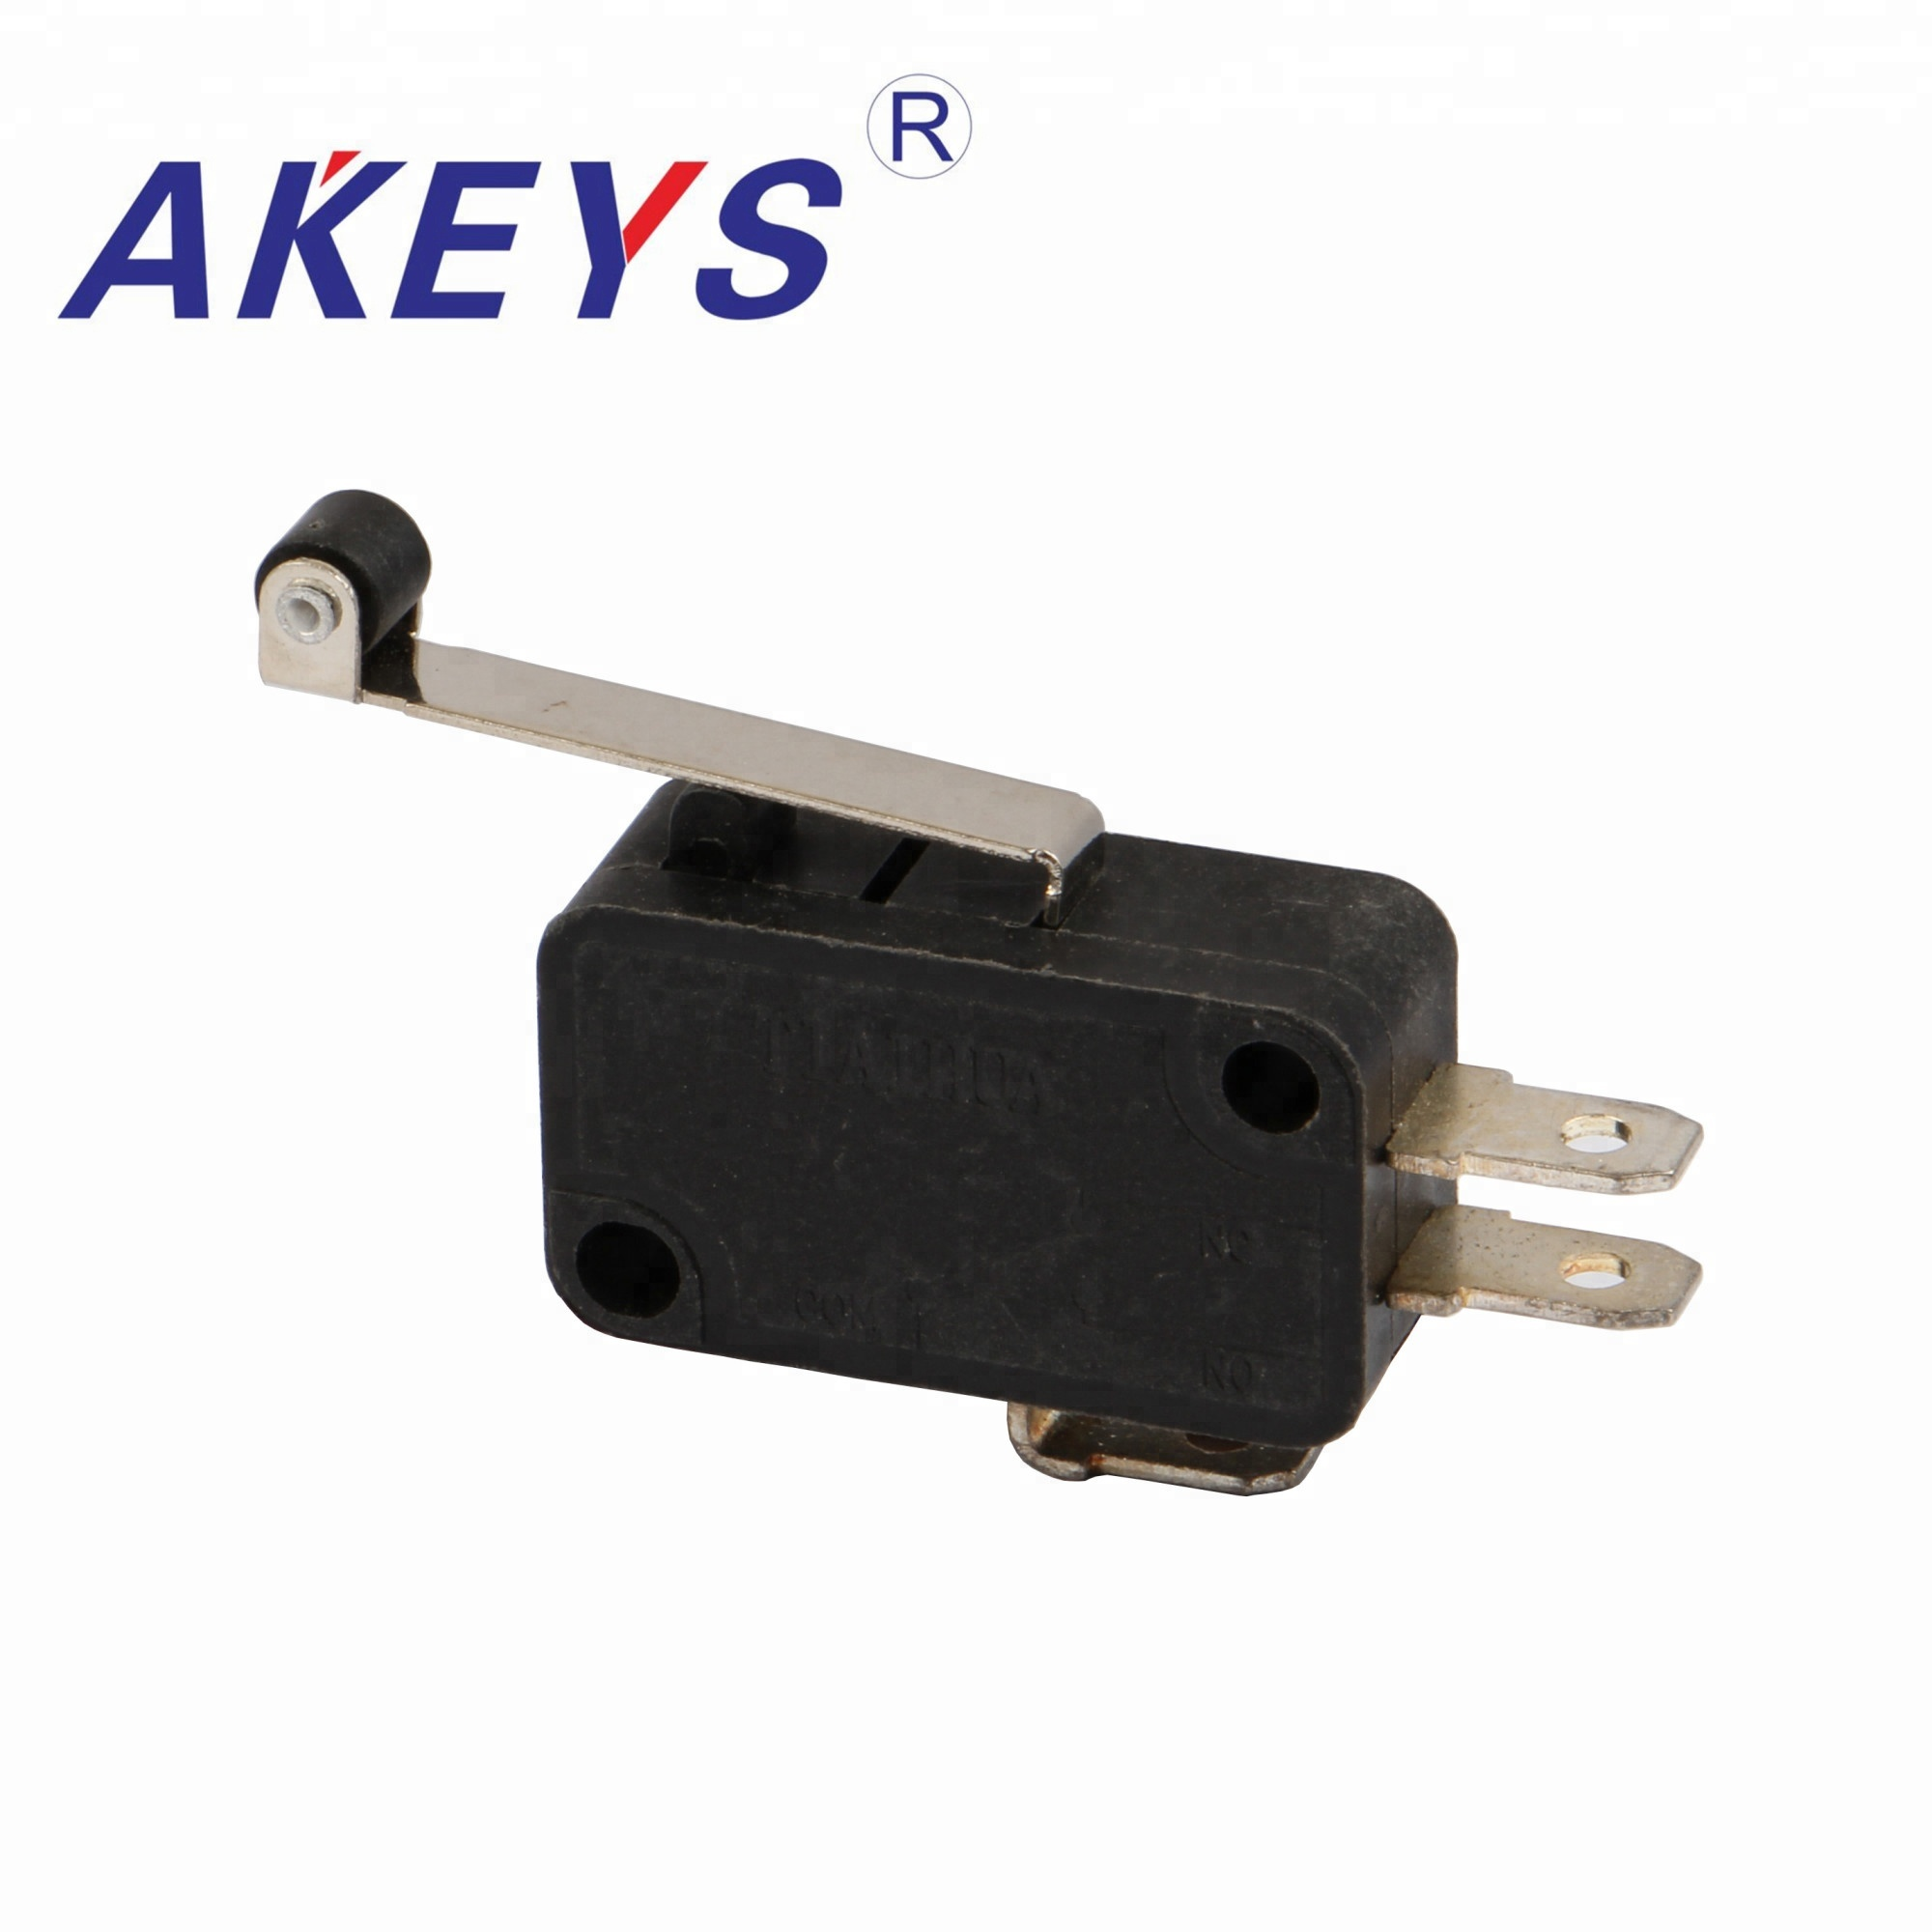 10PCS MS-019 2pins Large micro switch with wheel roller lever